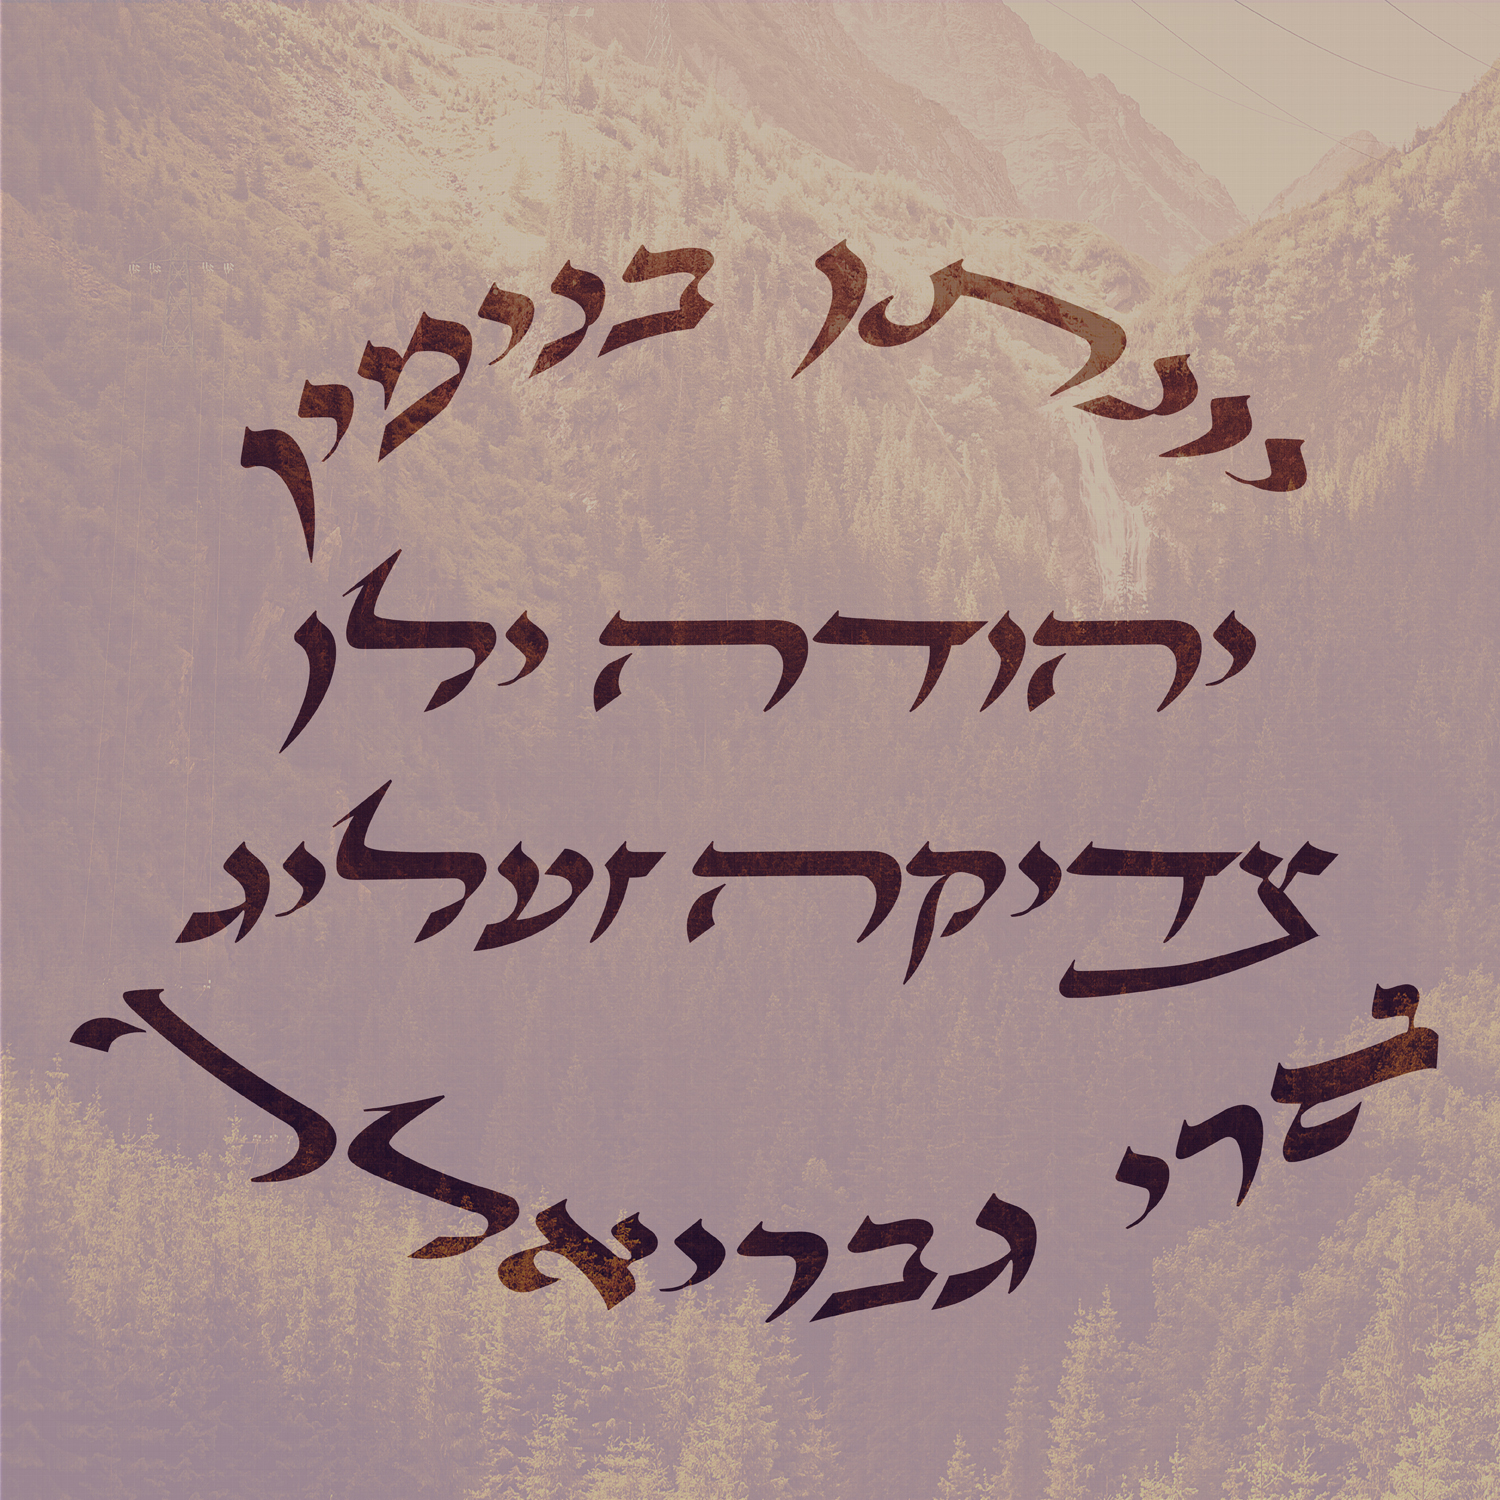 our Hebrew names